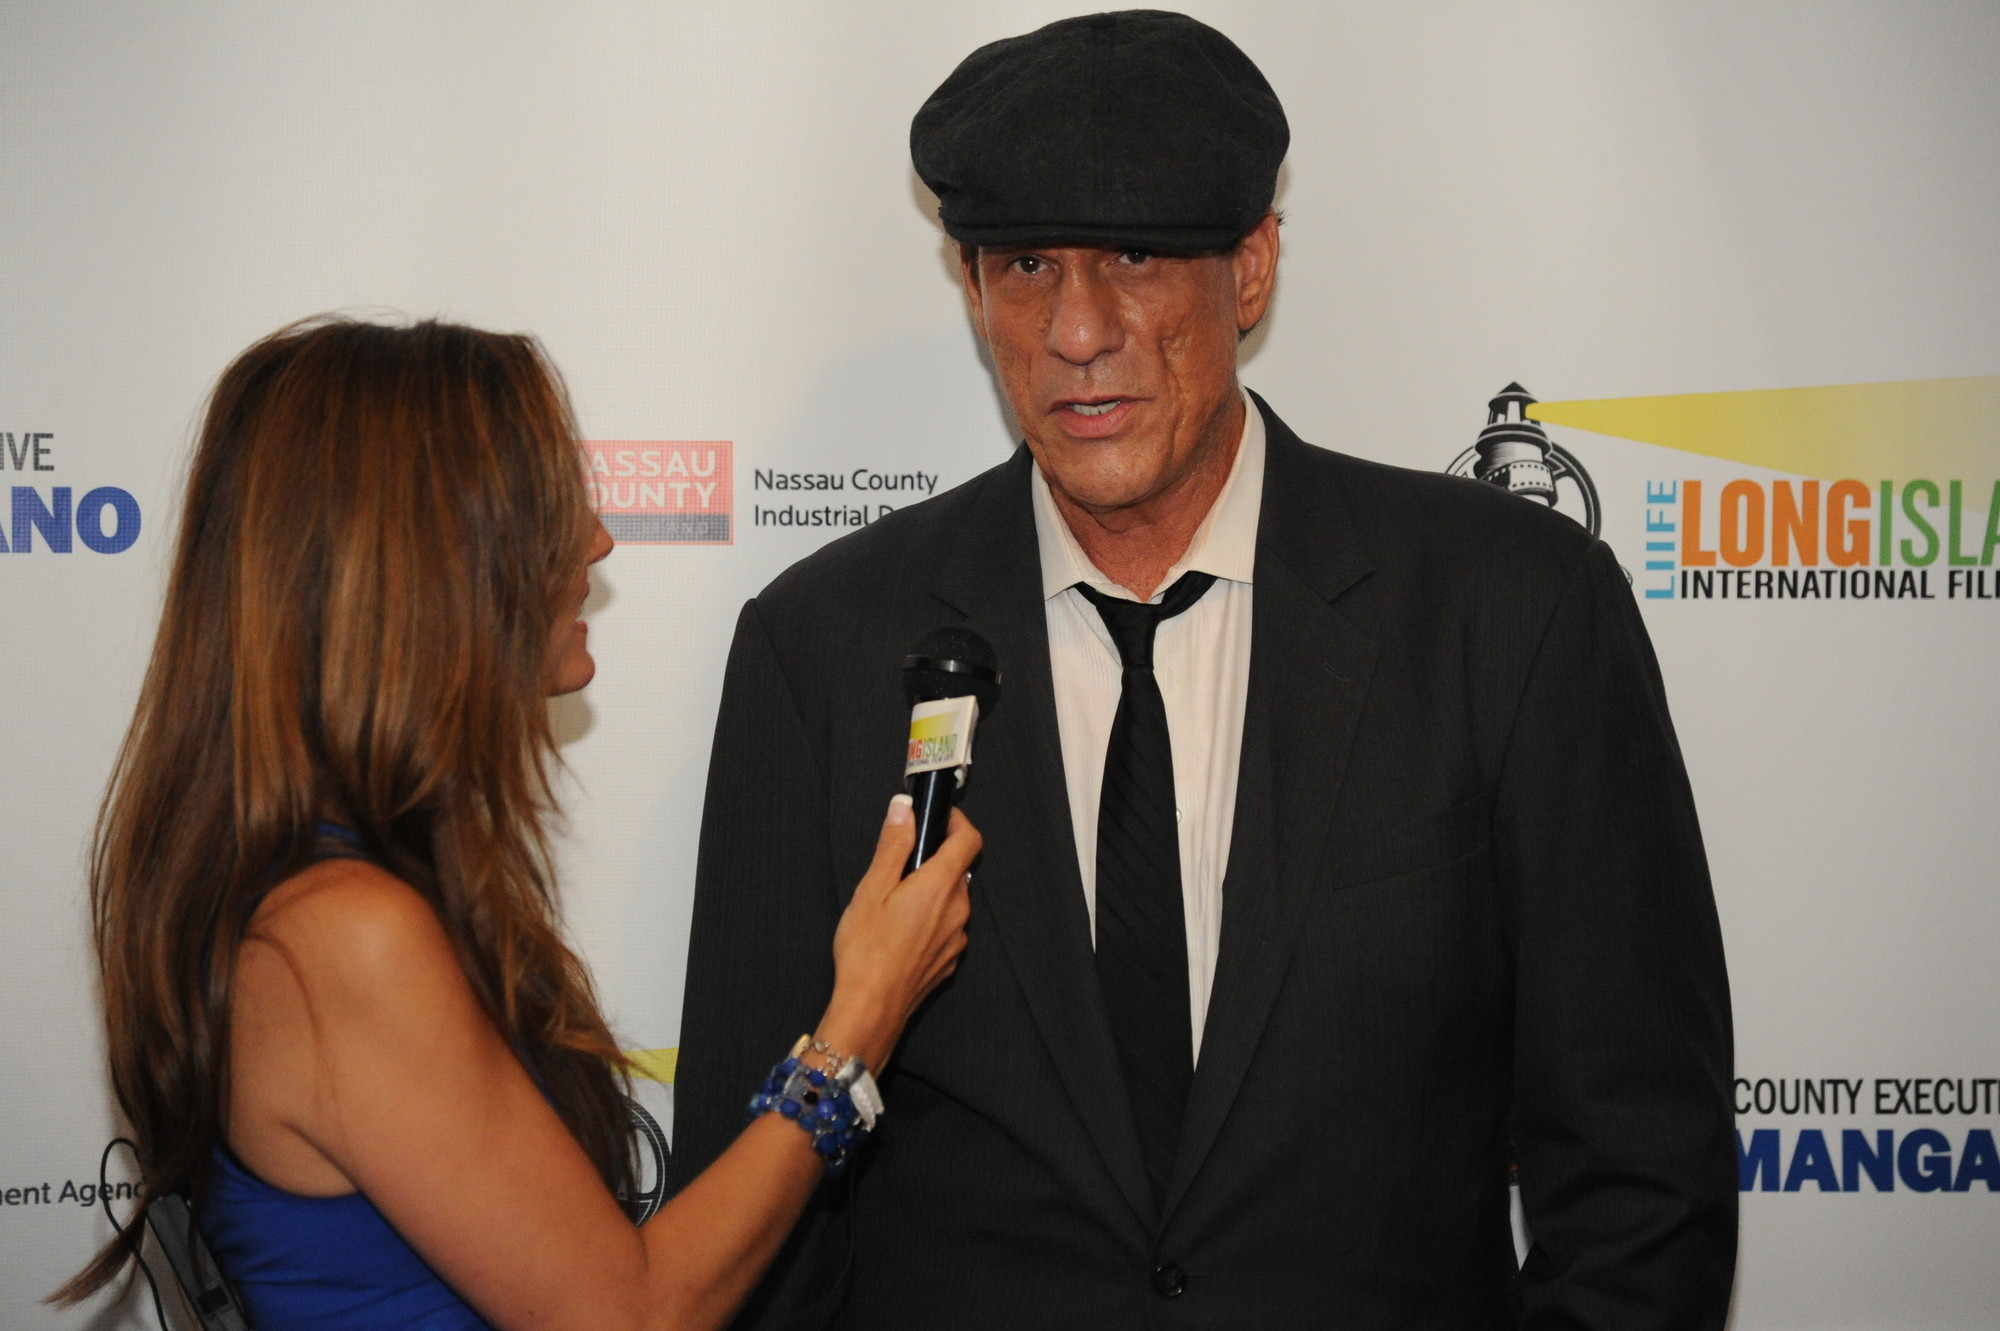 Robert Davi, who has appeared in more than 130 films, spoke to media before receiving the Long Island Filmmaker Achievement Award.